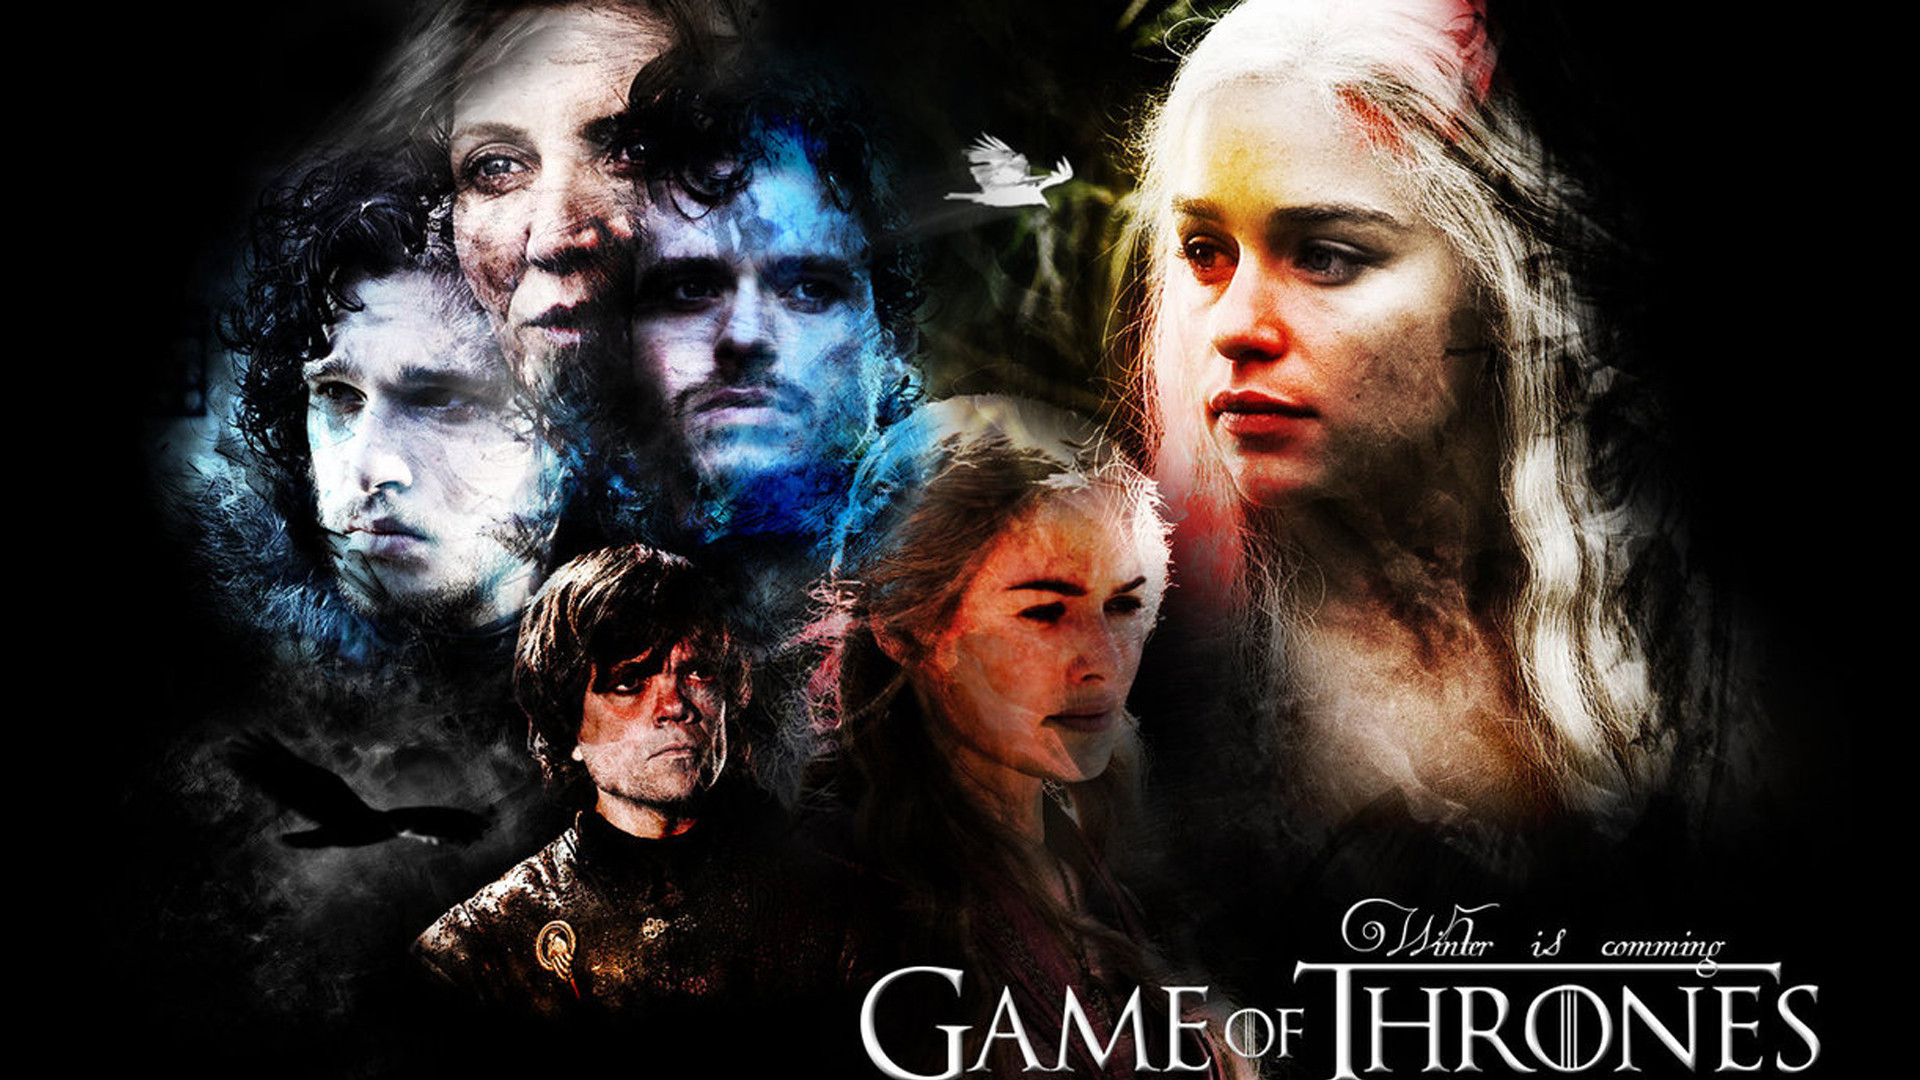 Game of Thrones Television Series   Wallpaper High Definition High 1920x1080